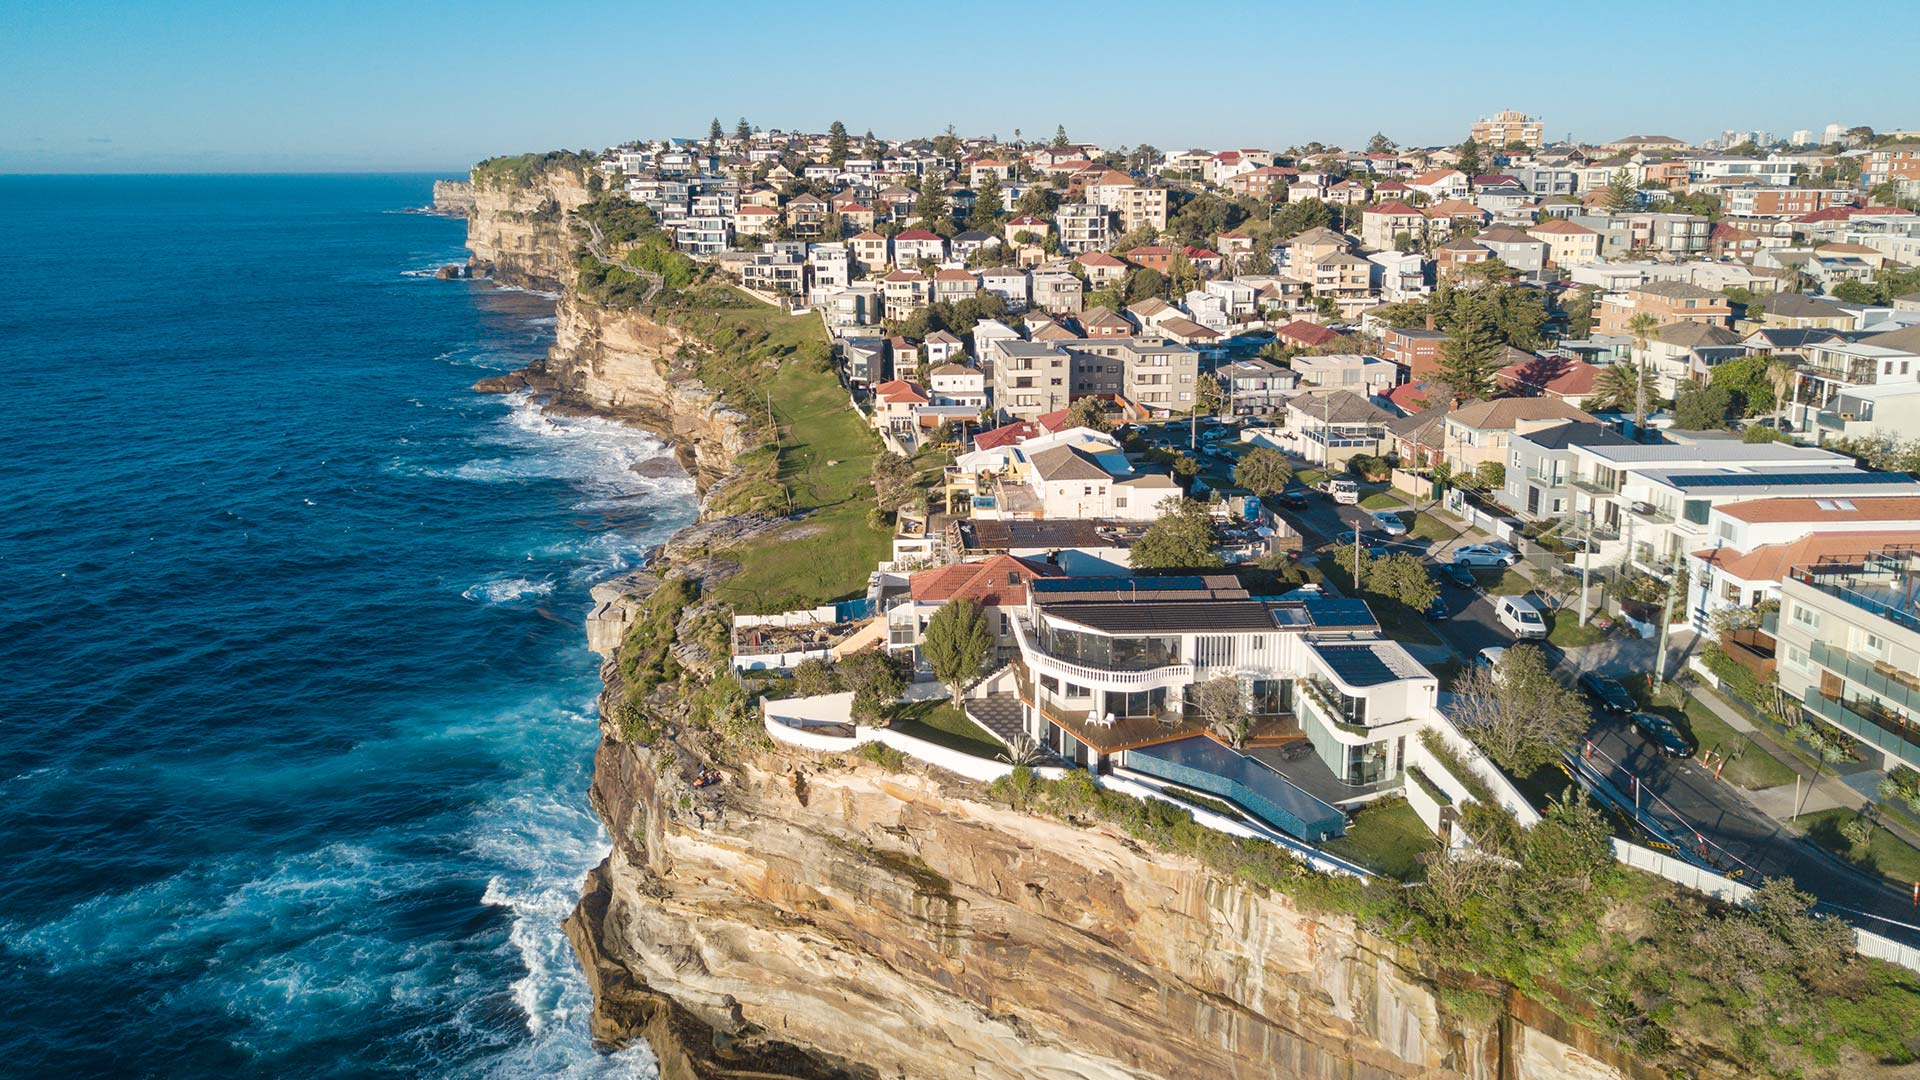 Panorama to illustrate dating in sydney eastern suburbs